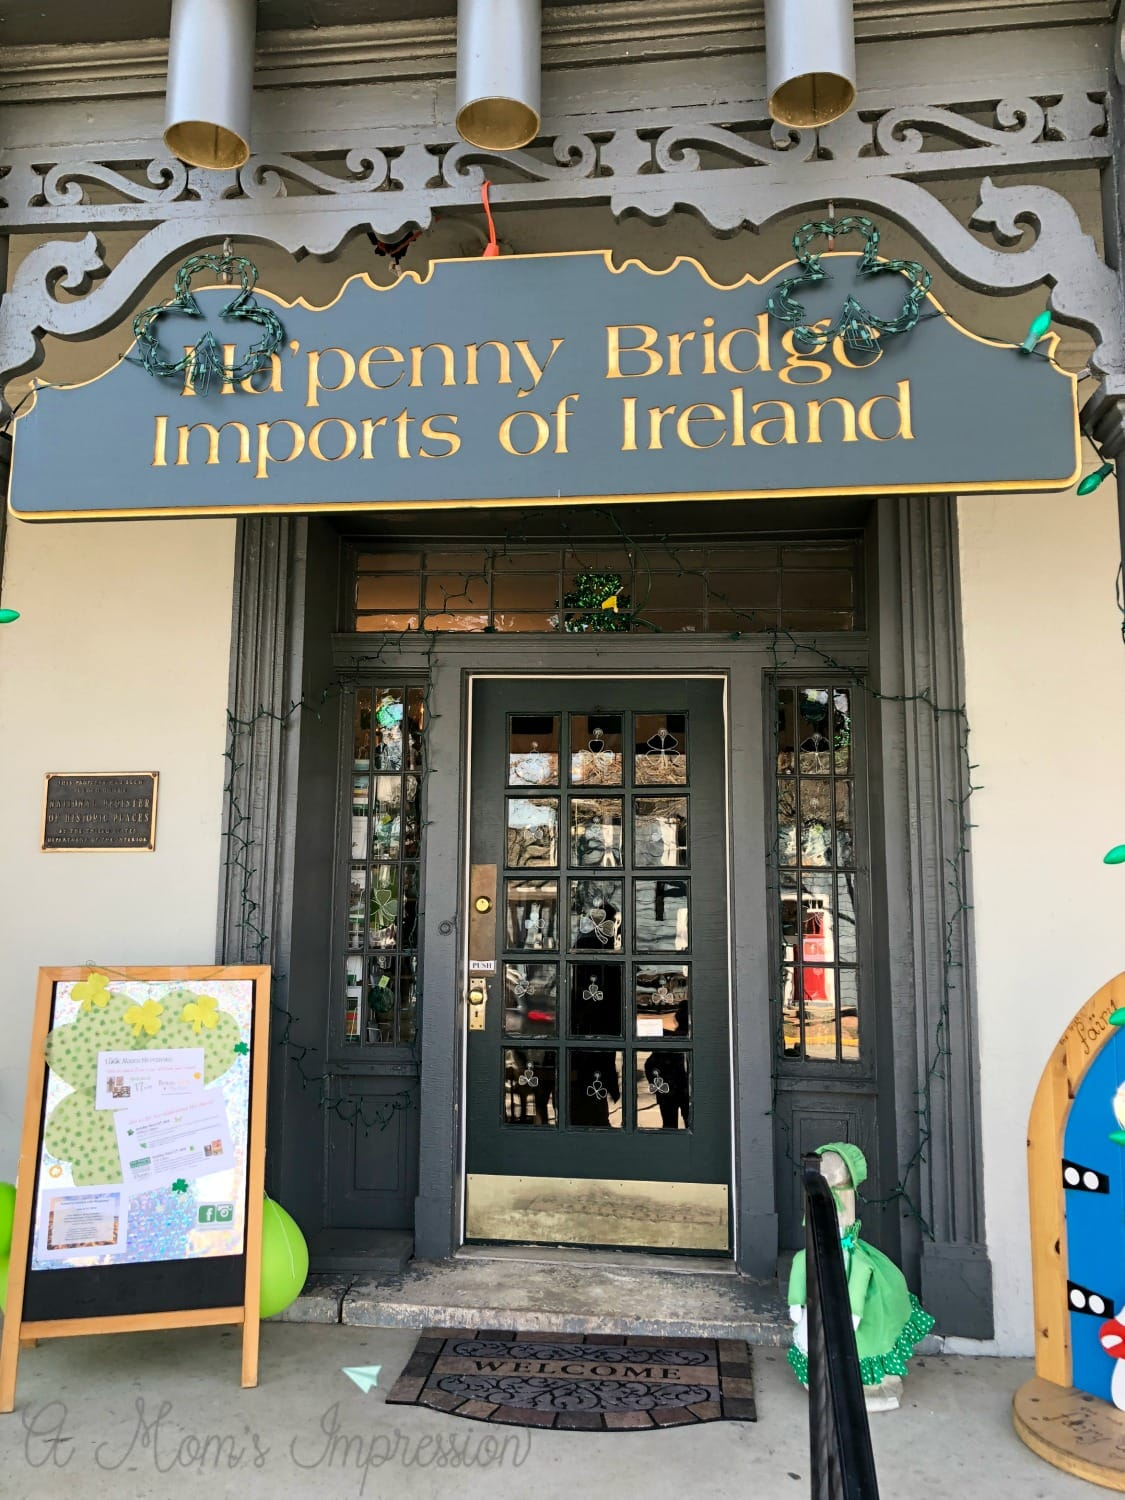 ha'penny bridge imports of ireland